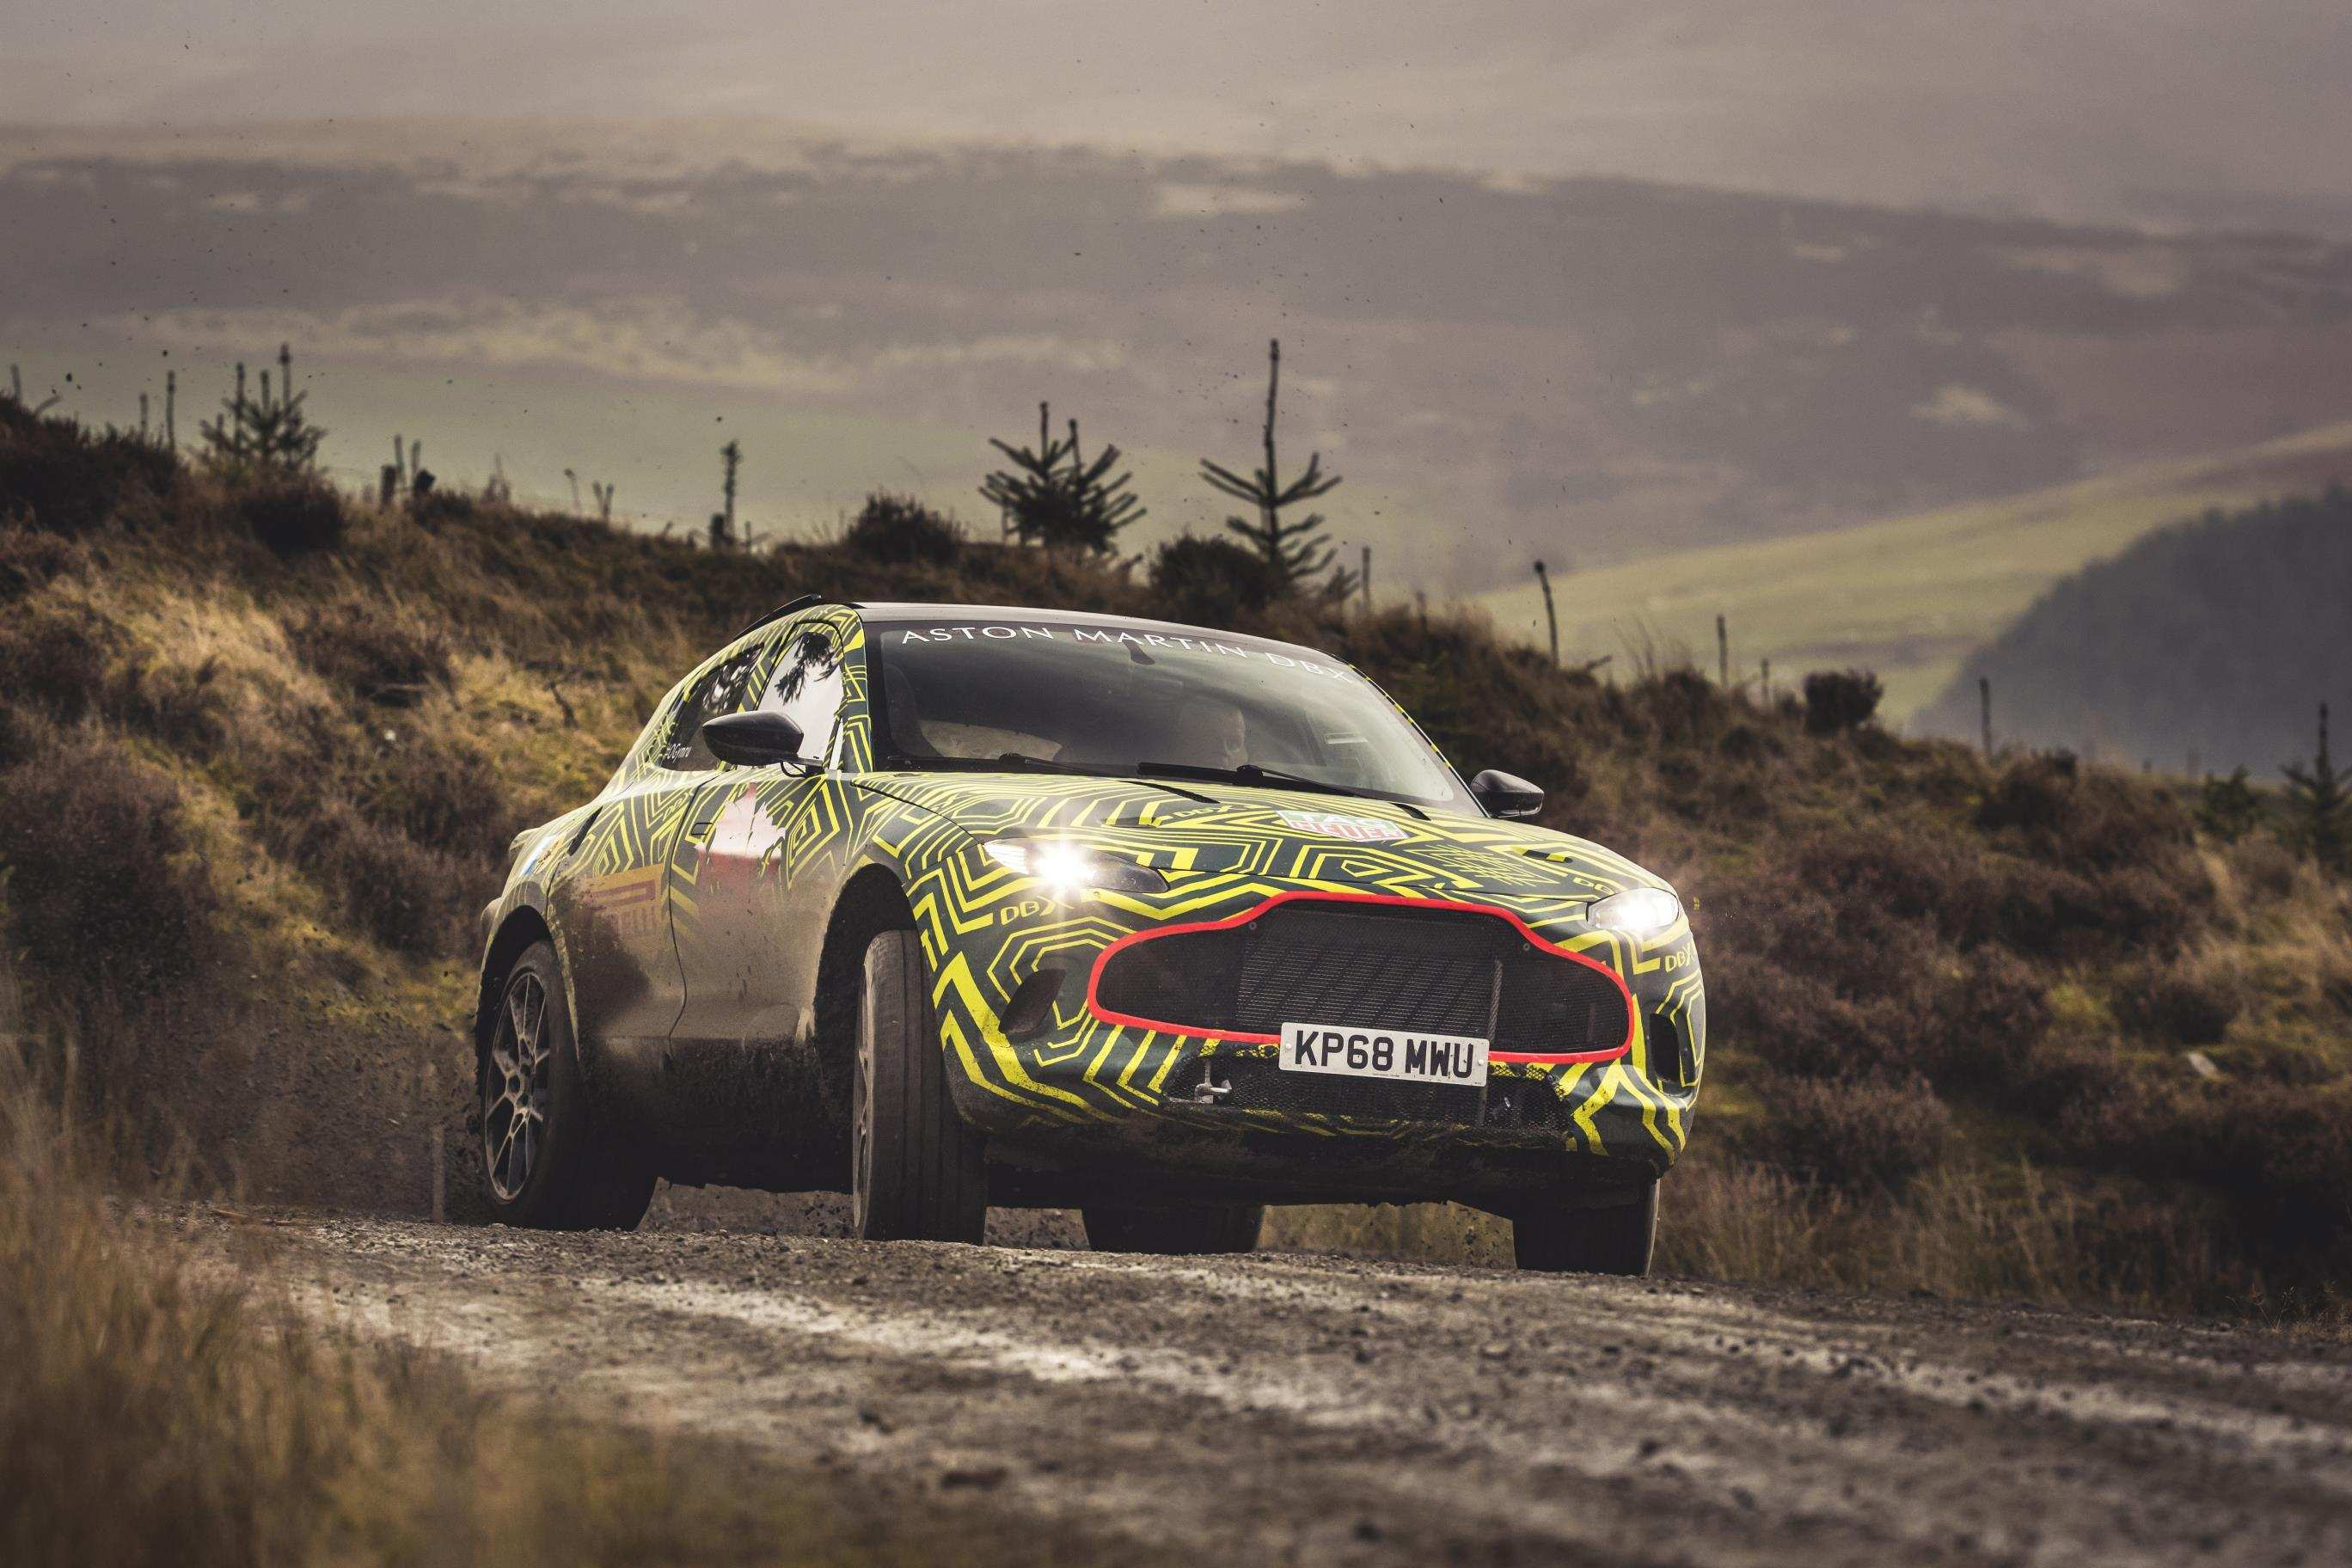 35 All New 2020 Aston Martin Dbx Performance for 2020 Aston Martin Dbx